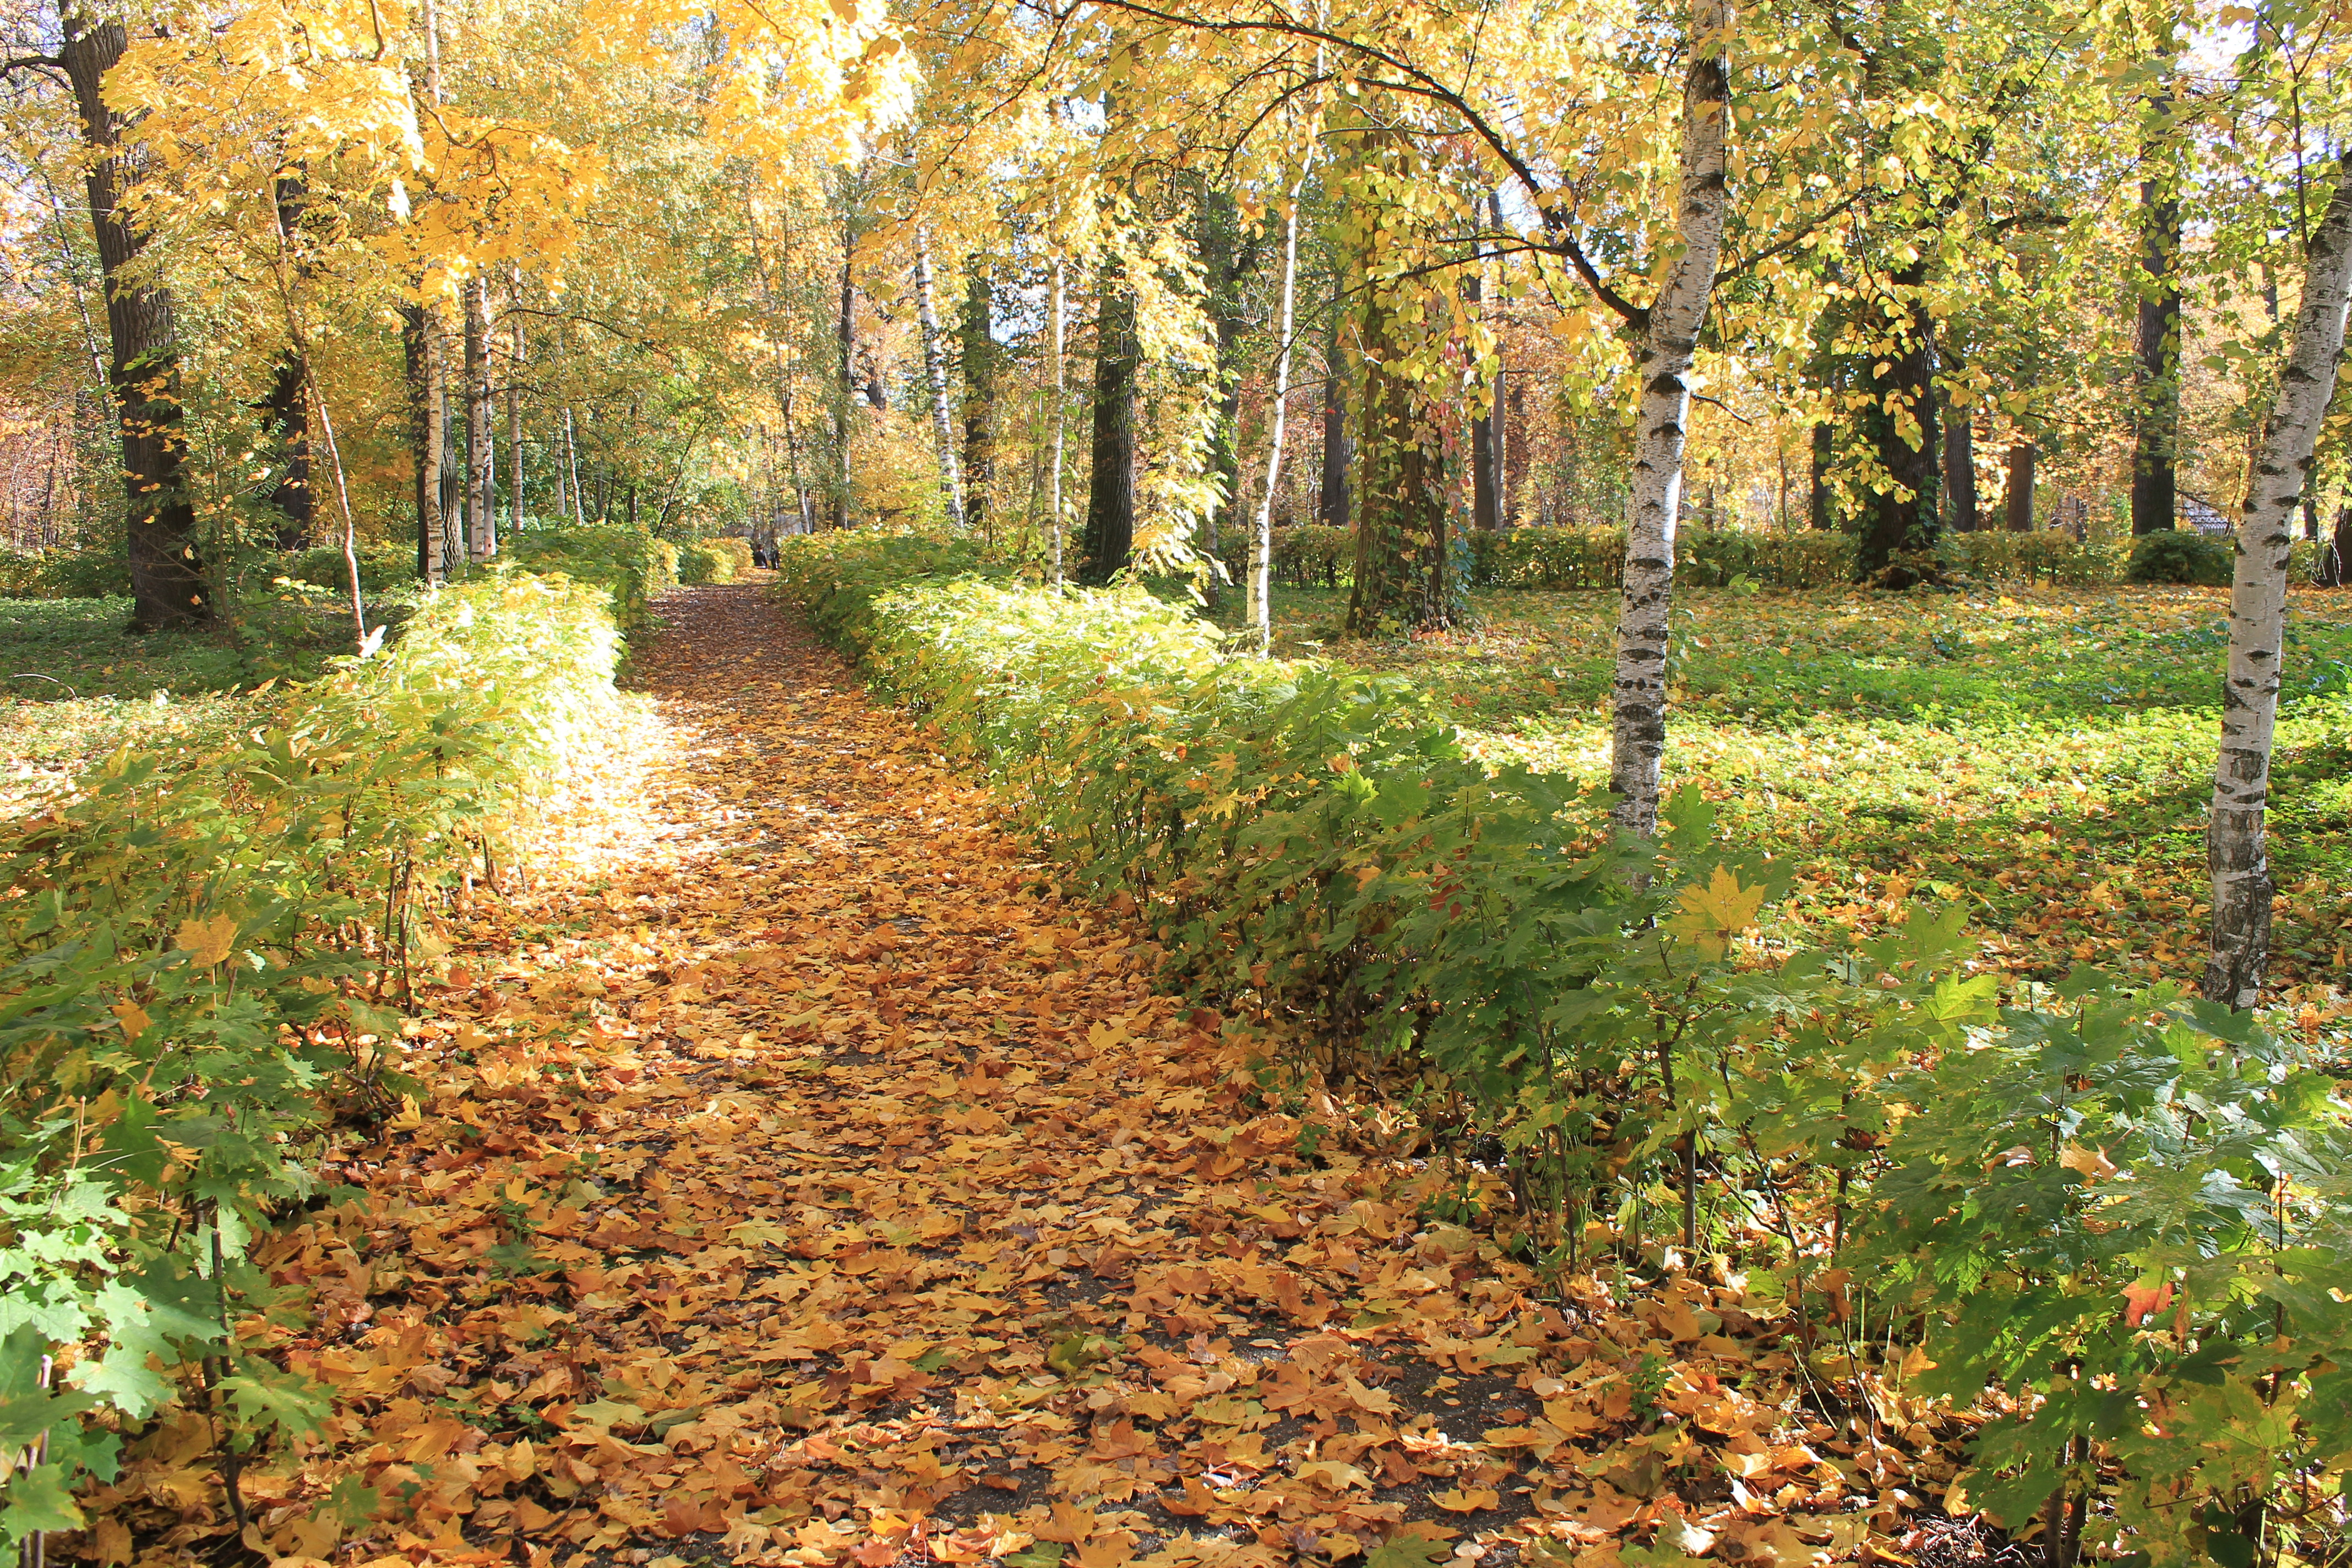 Path in the woods at autumn photo